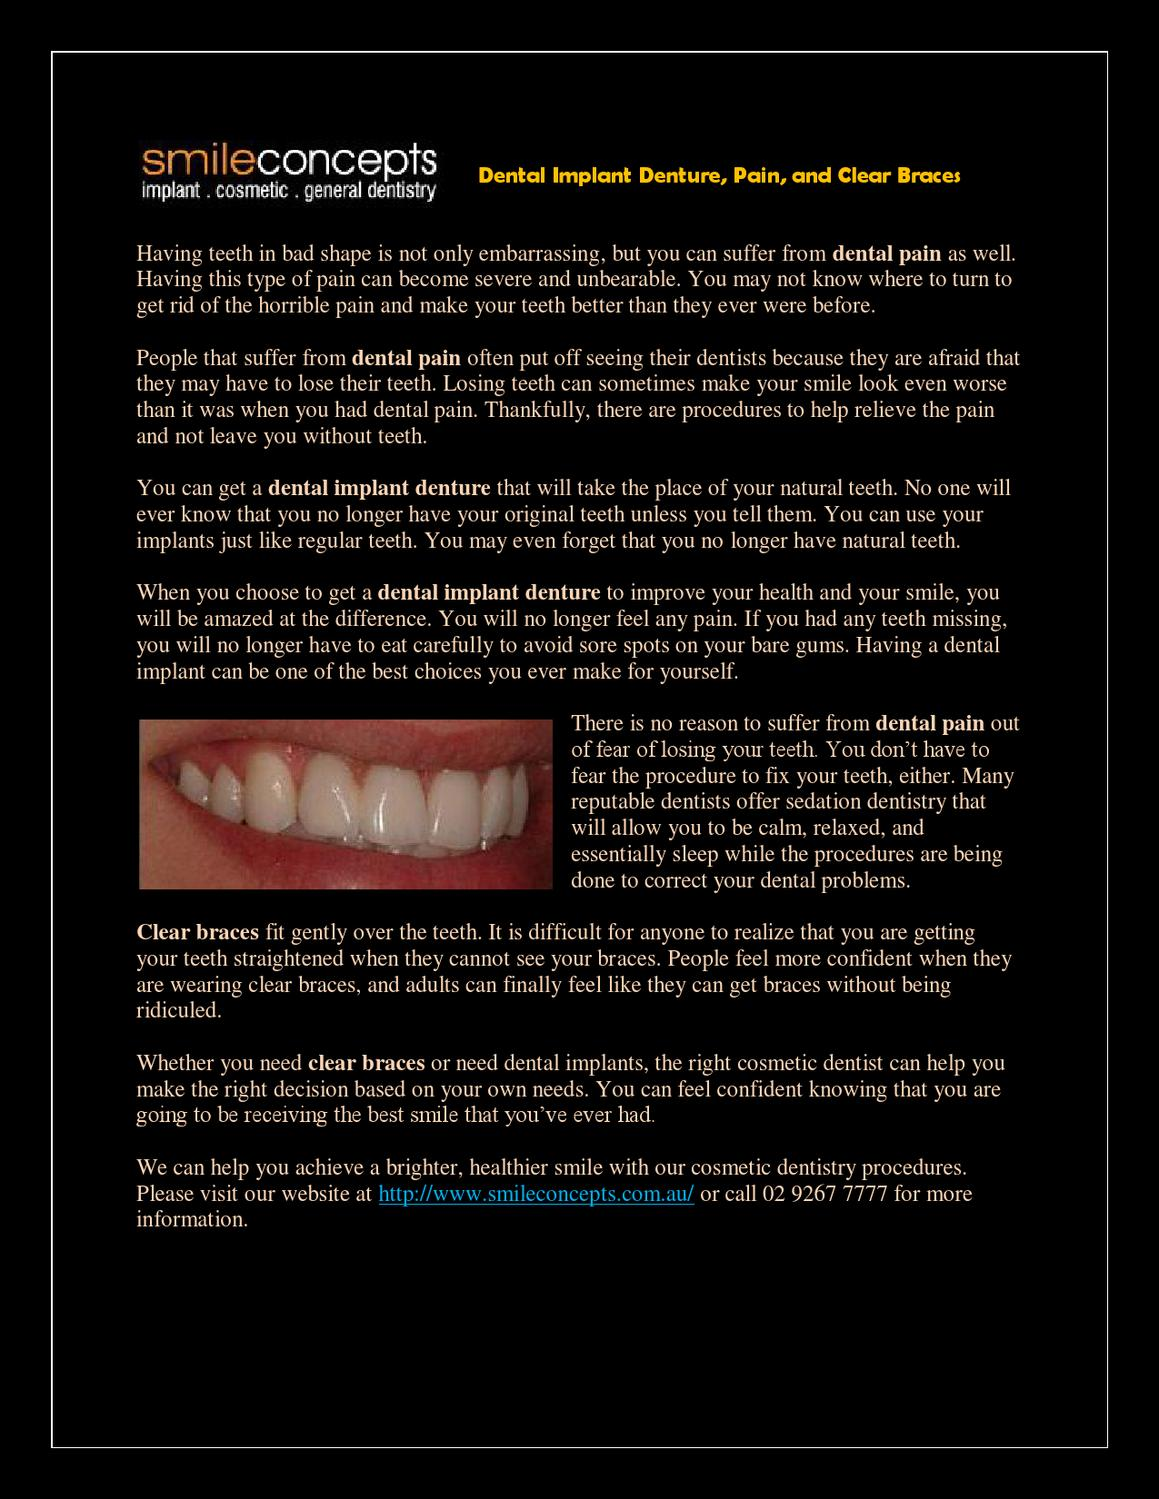 How To Make Your Own Braces : braces, Dental, Implant, Denture,, Pain,, Clear, Braces, Smile, Concepts, Issuu